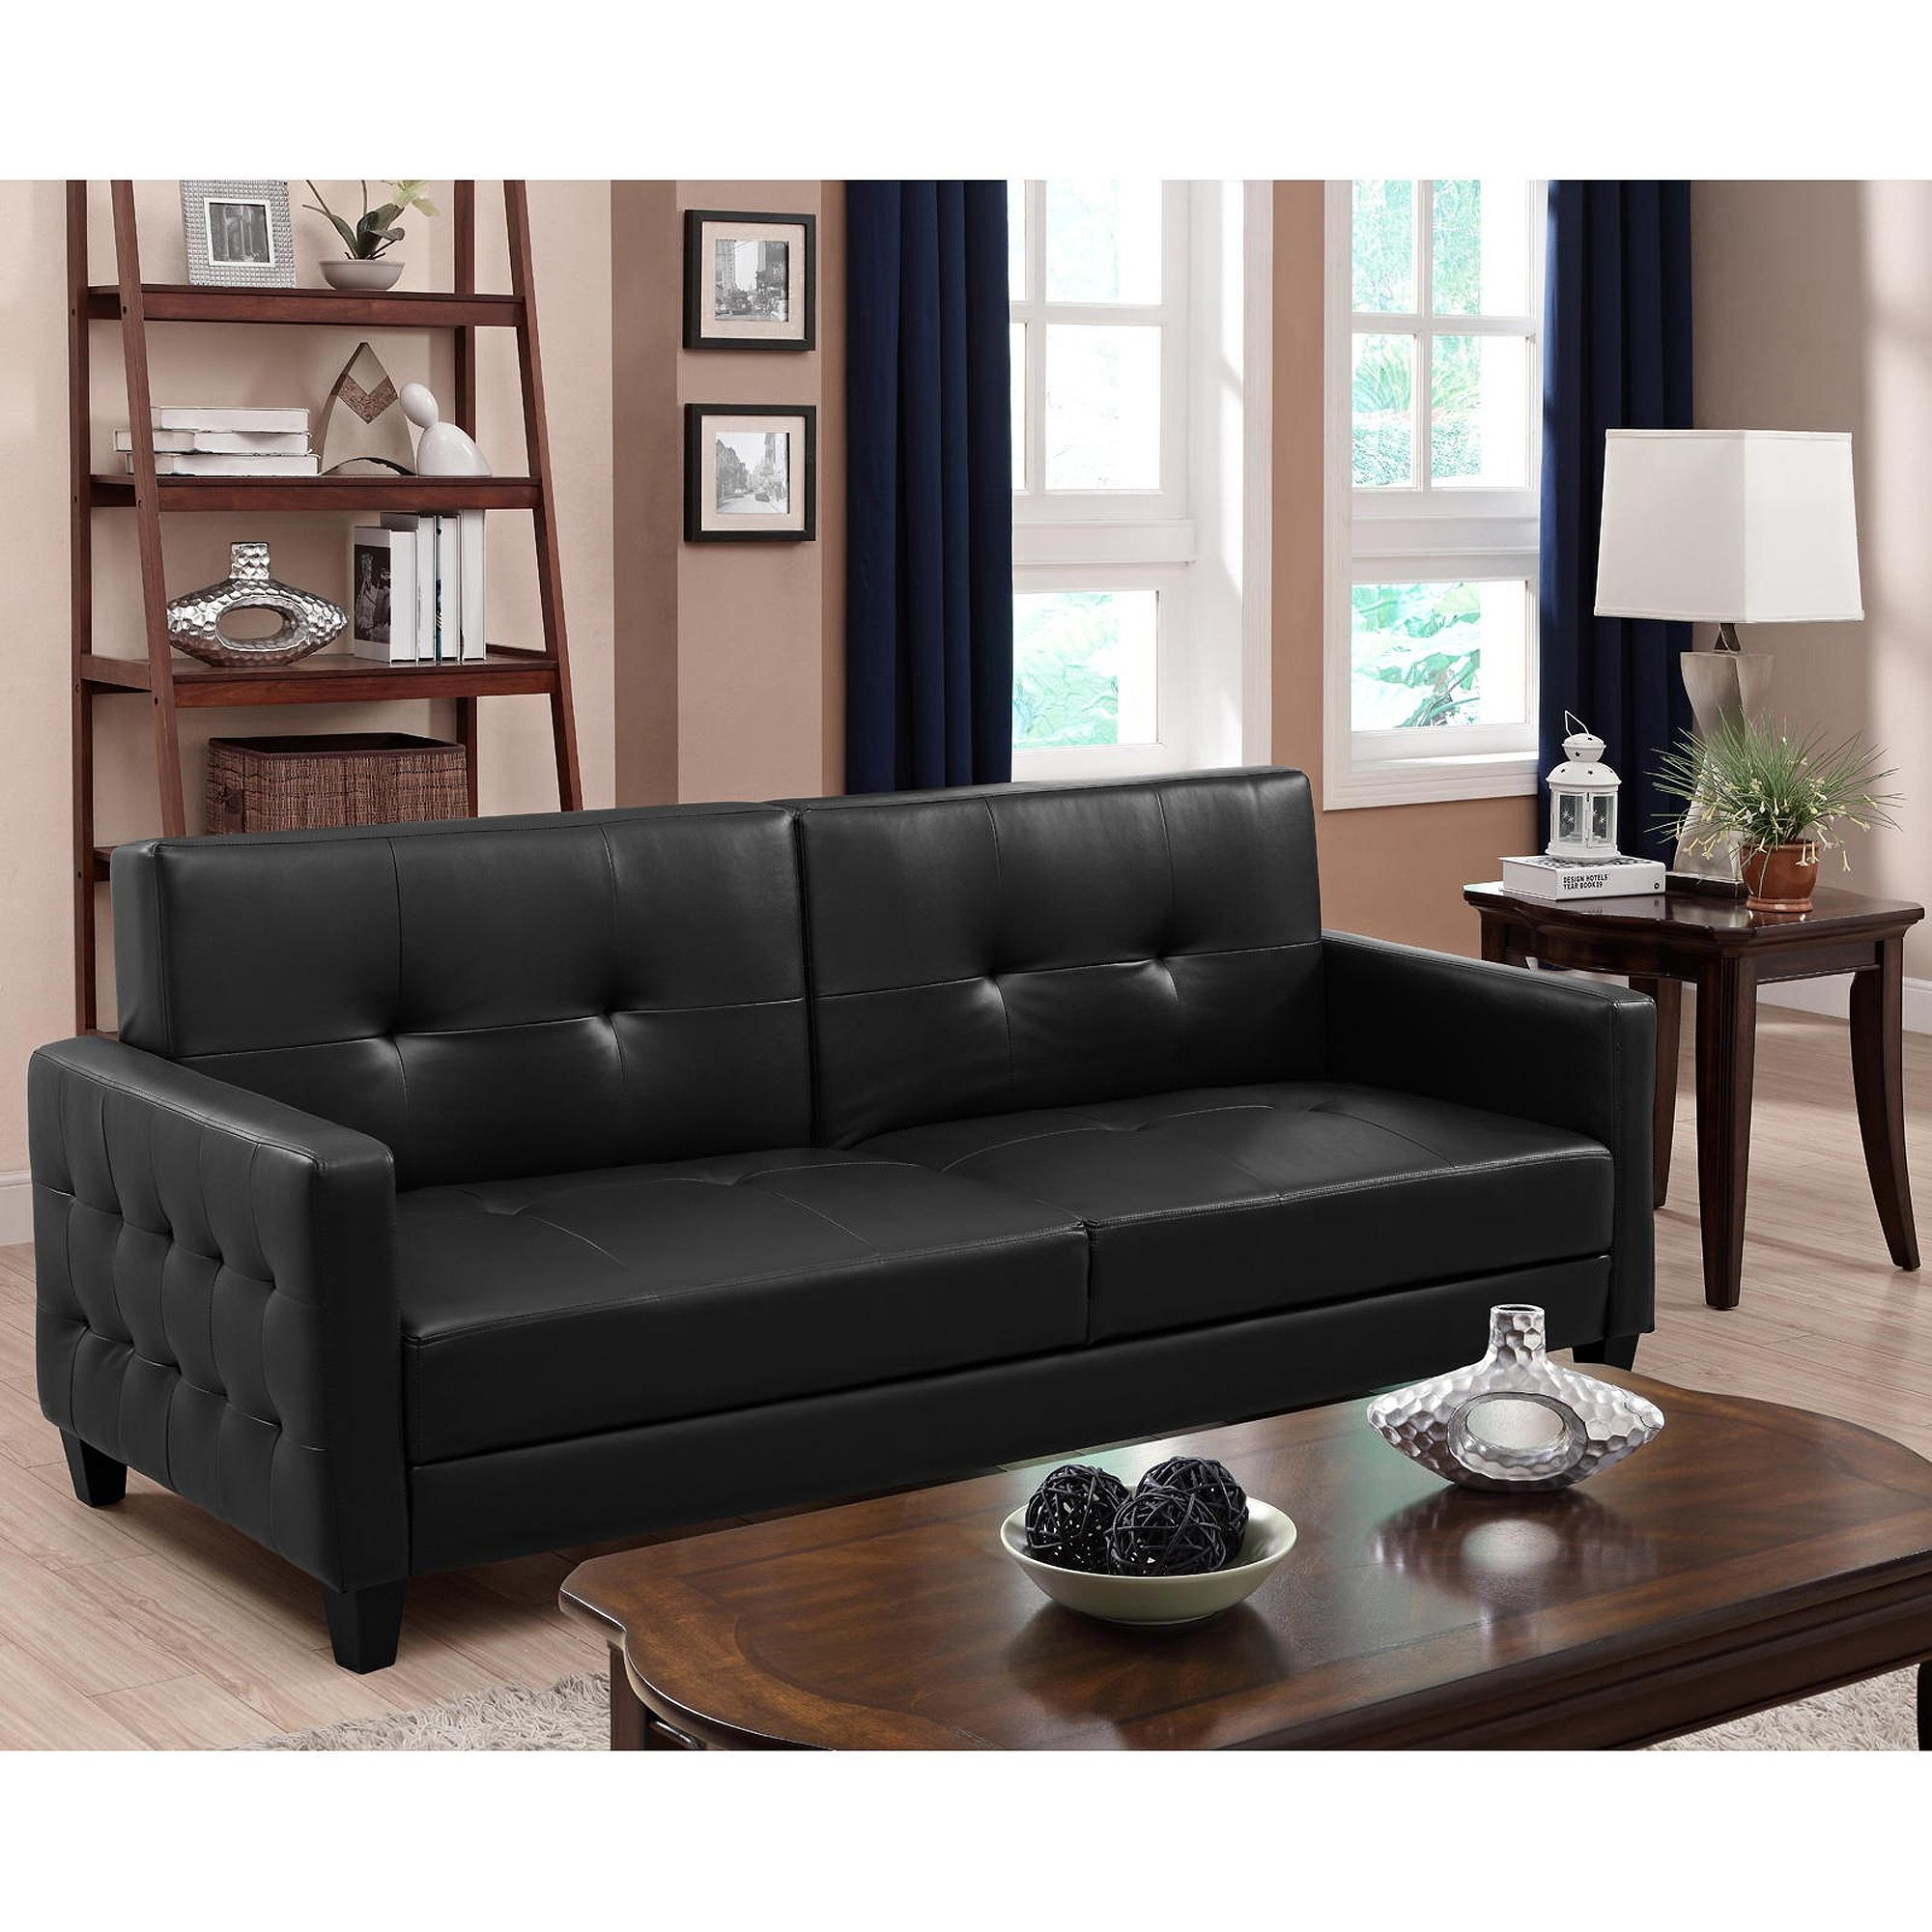 Atherton Home Manhattan Convertible Futon Sofa Bed And Lounger In Faux Leather Futon Sofas (View 8 of 20)